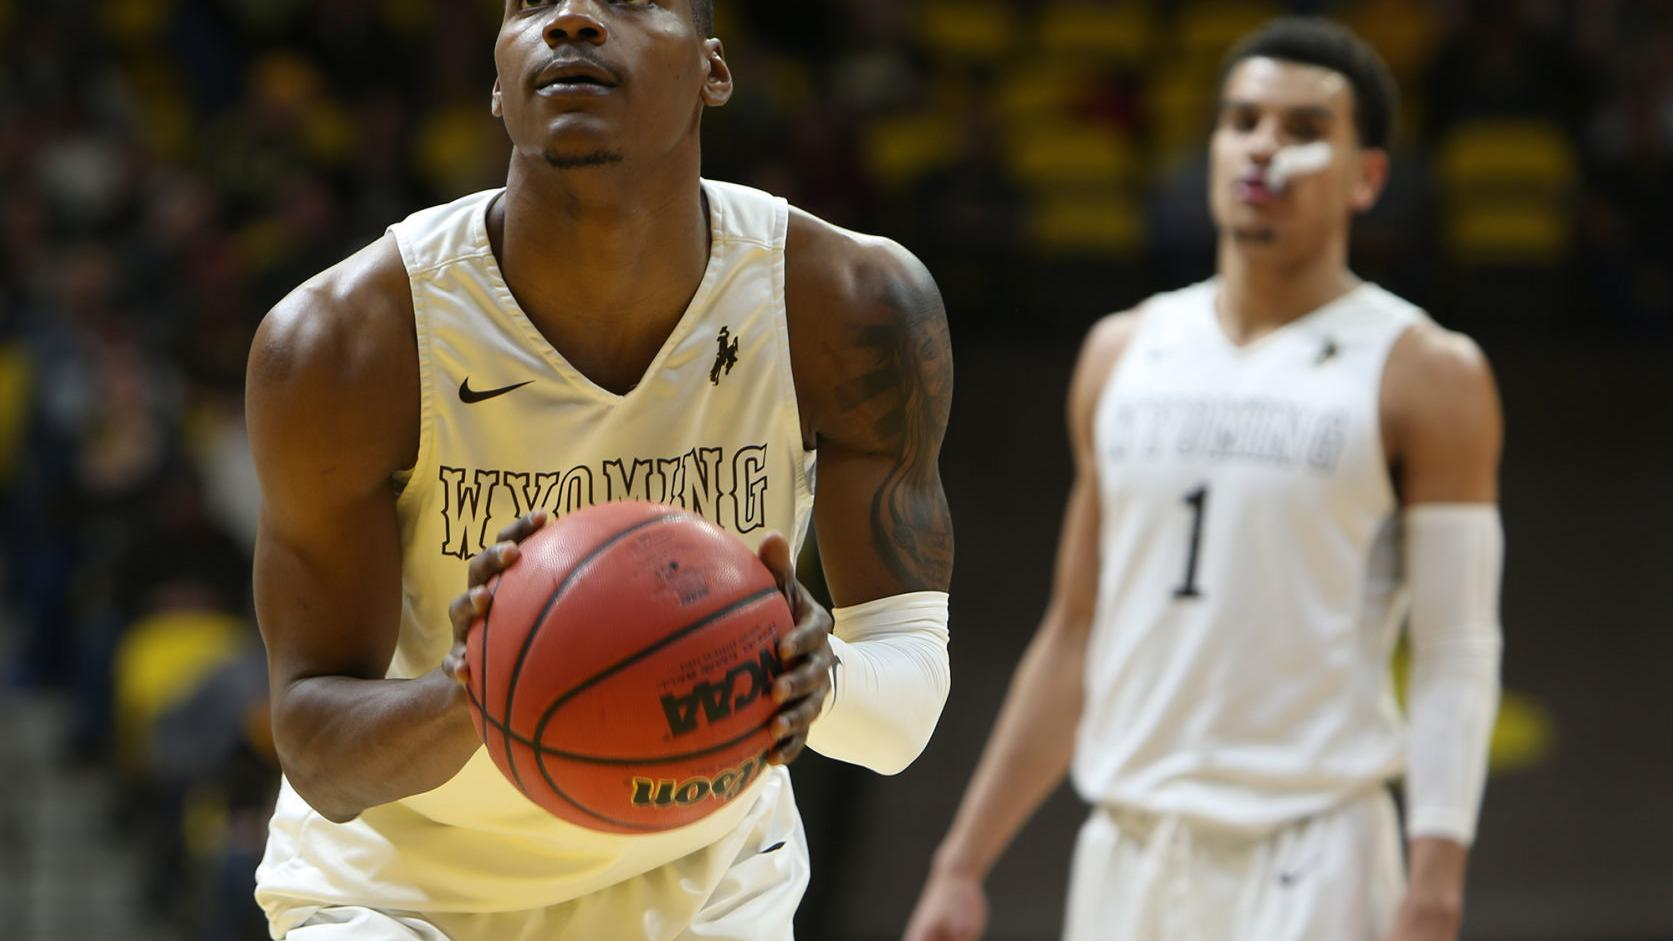 Wyoming men's hoops falls to New Mexico in highest-scoring game in A-A history